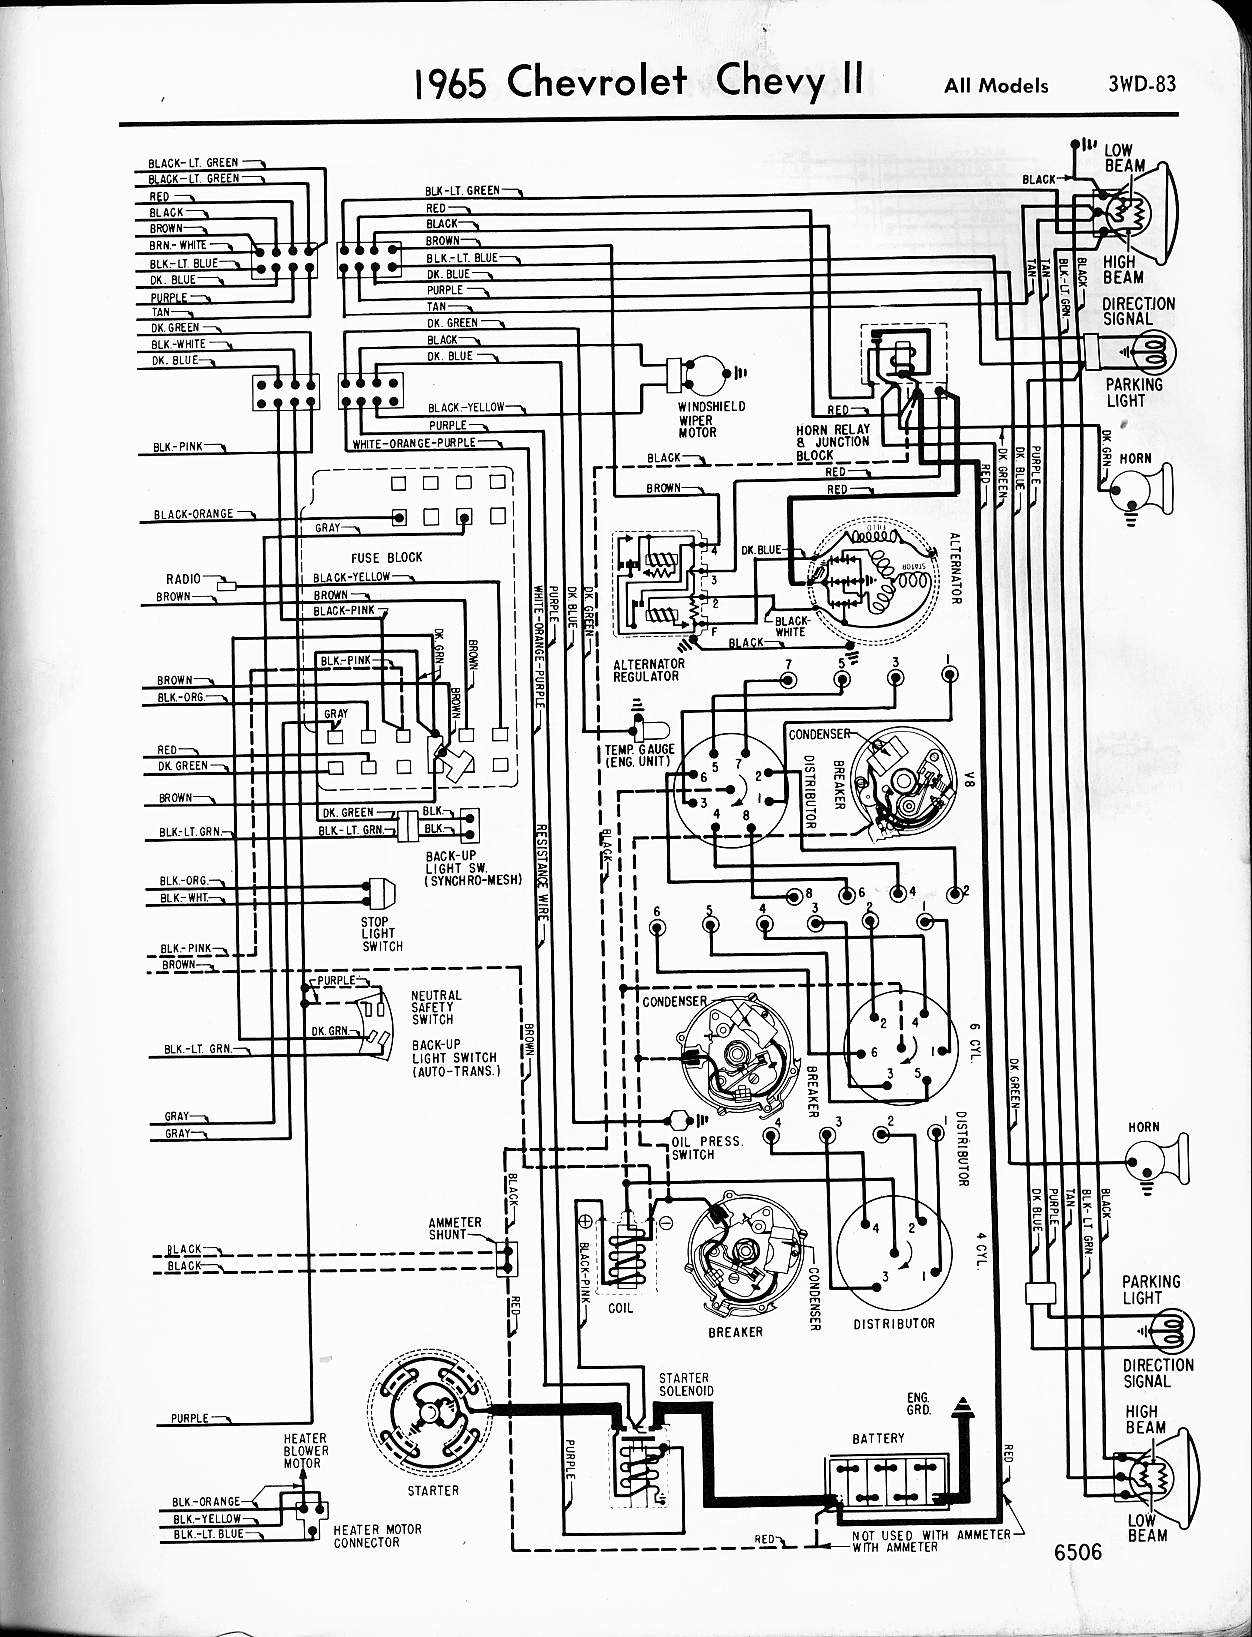 57 65 chevy wiring diagrams 1965 Chevy Truck Wiring Diagram 1965 chevy ii (all models) left 1965 chevy truck wiring diagram